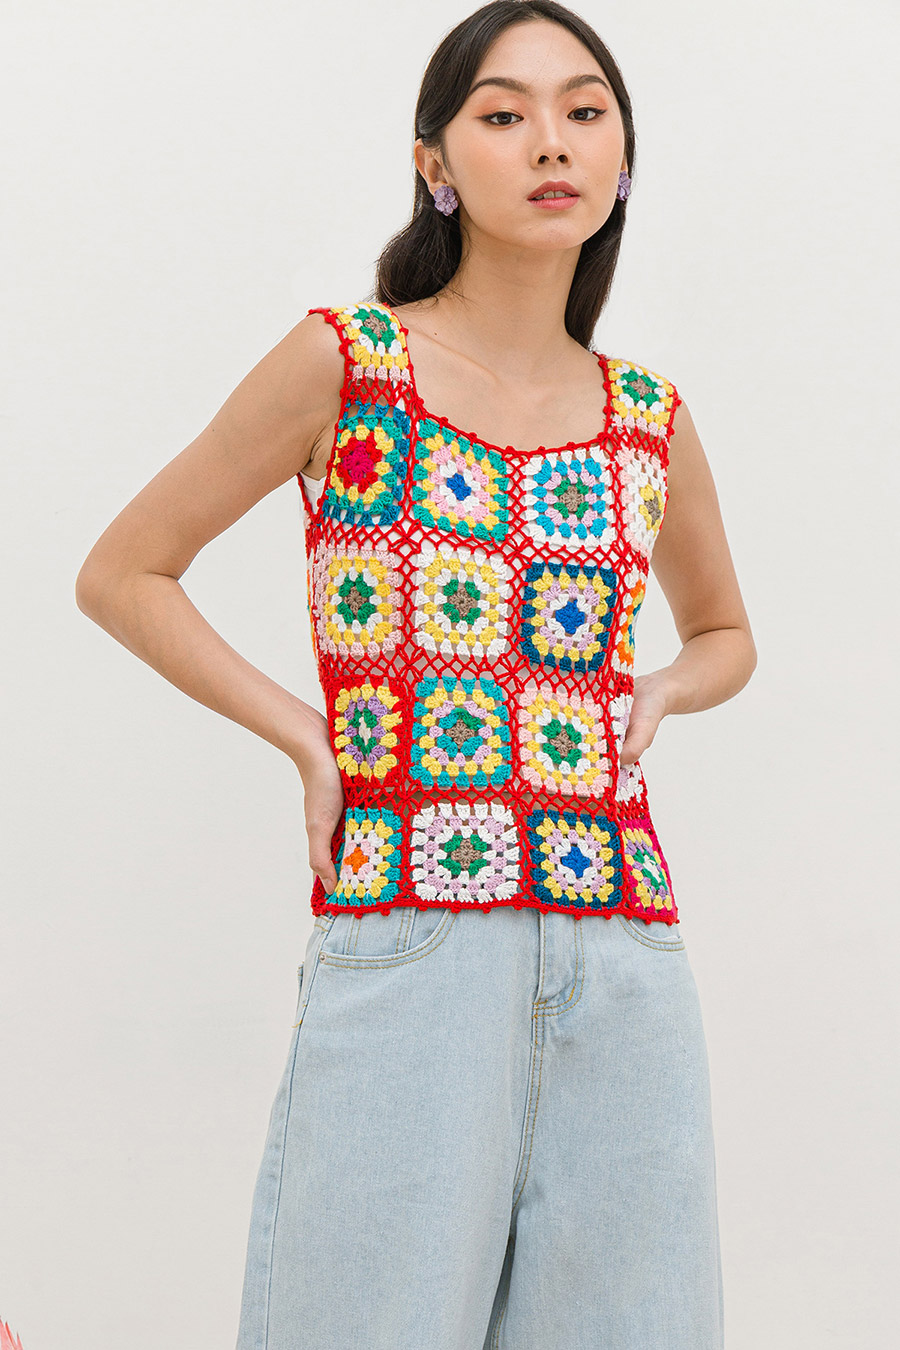 TAZU TOP - PATCHWORK